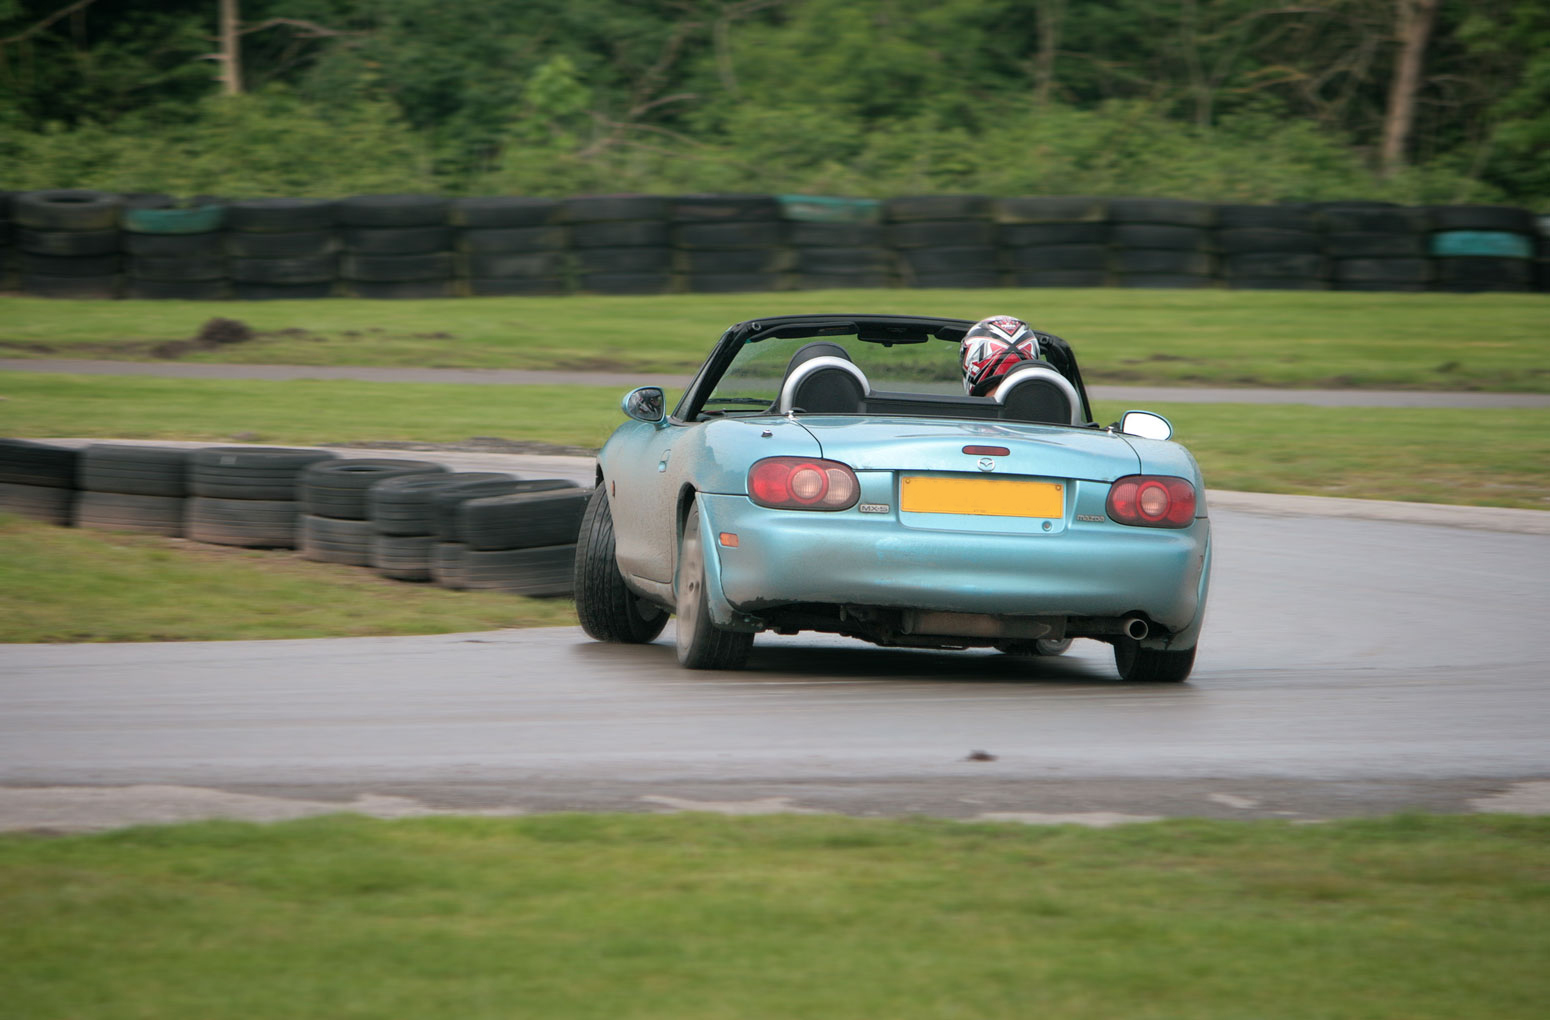 Drifting at Oulton Park